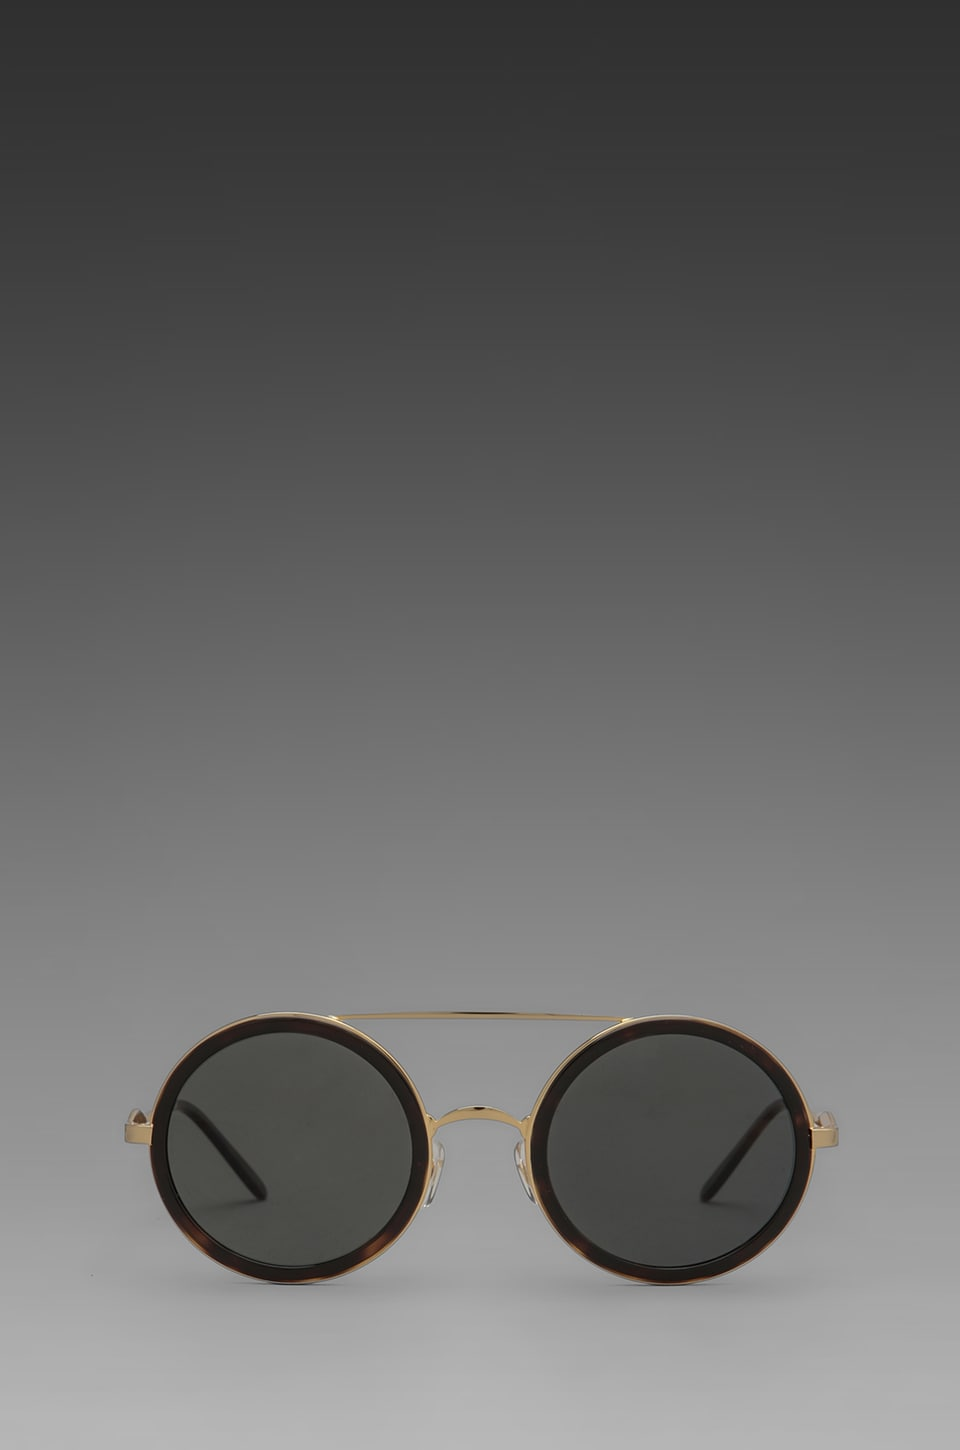 Wildfox Couture Winona Circle Frame Sunglasses in Gold w/ Tortoise